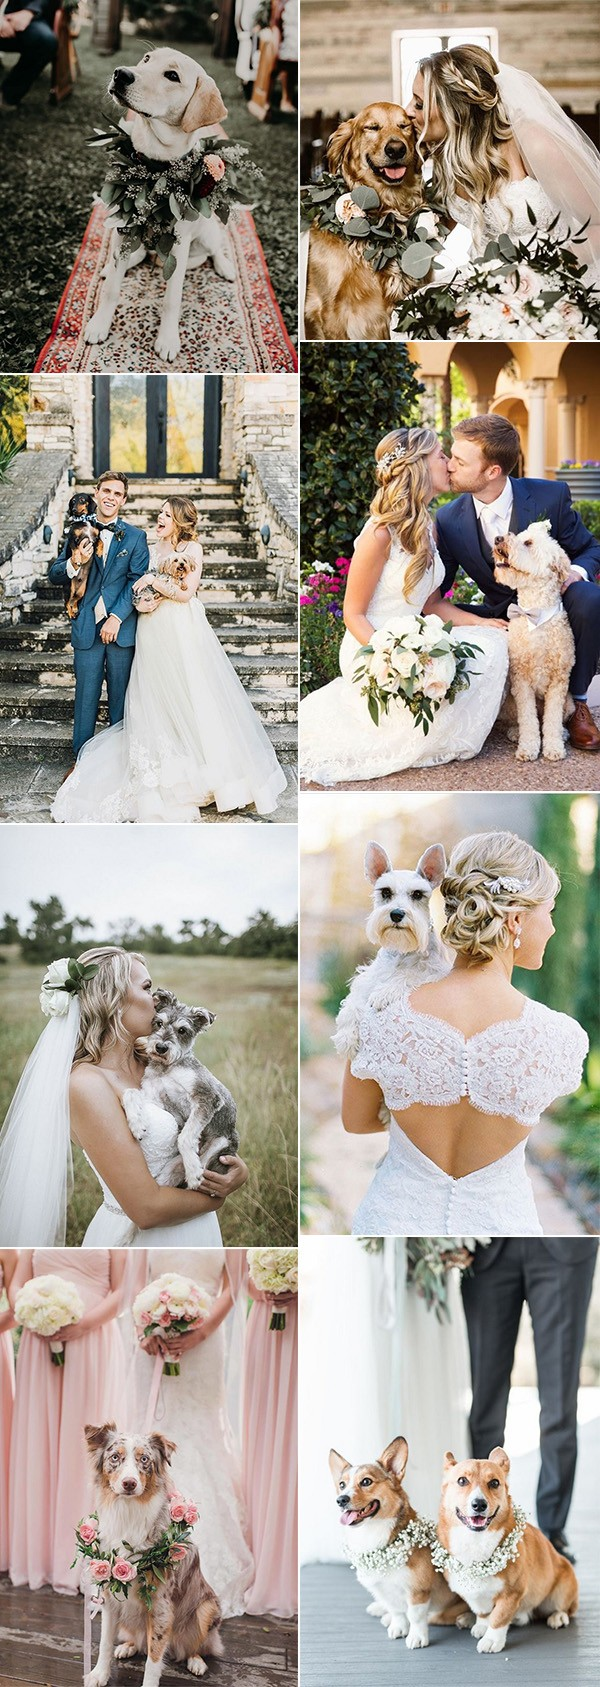 precious wedding photos with dogs